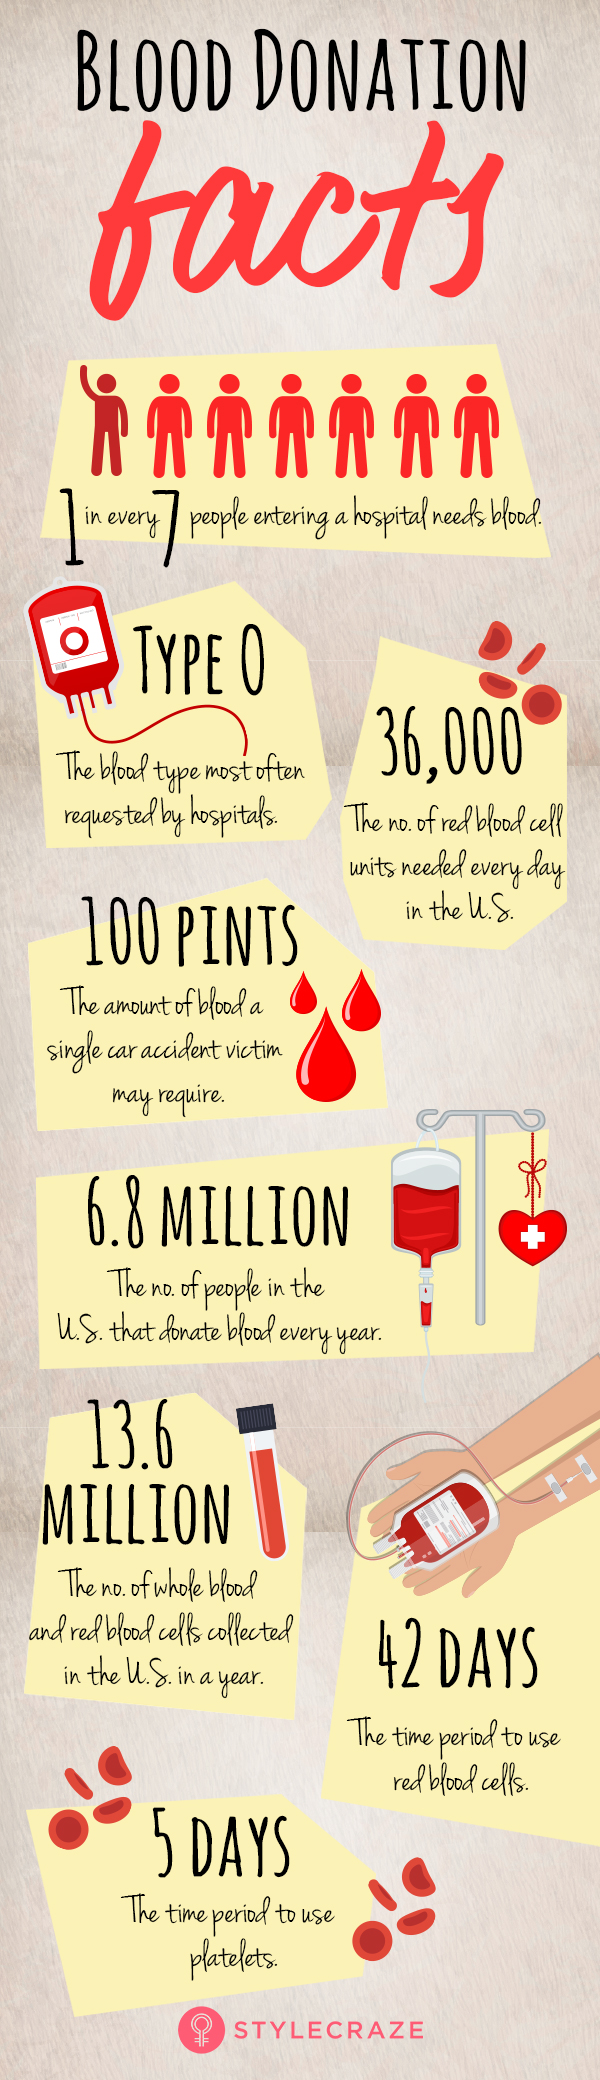 4 Incredible Health Benefits Of Donating Blood